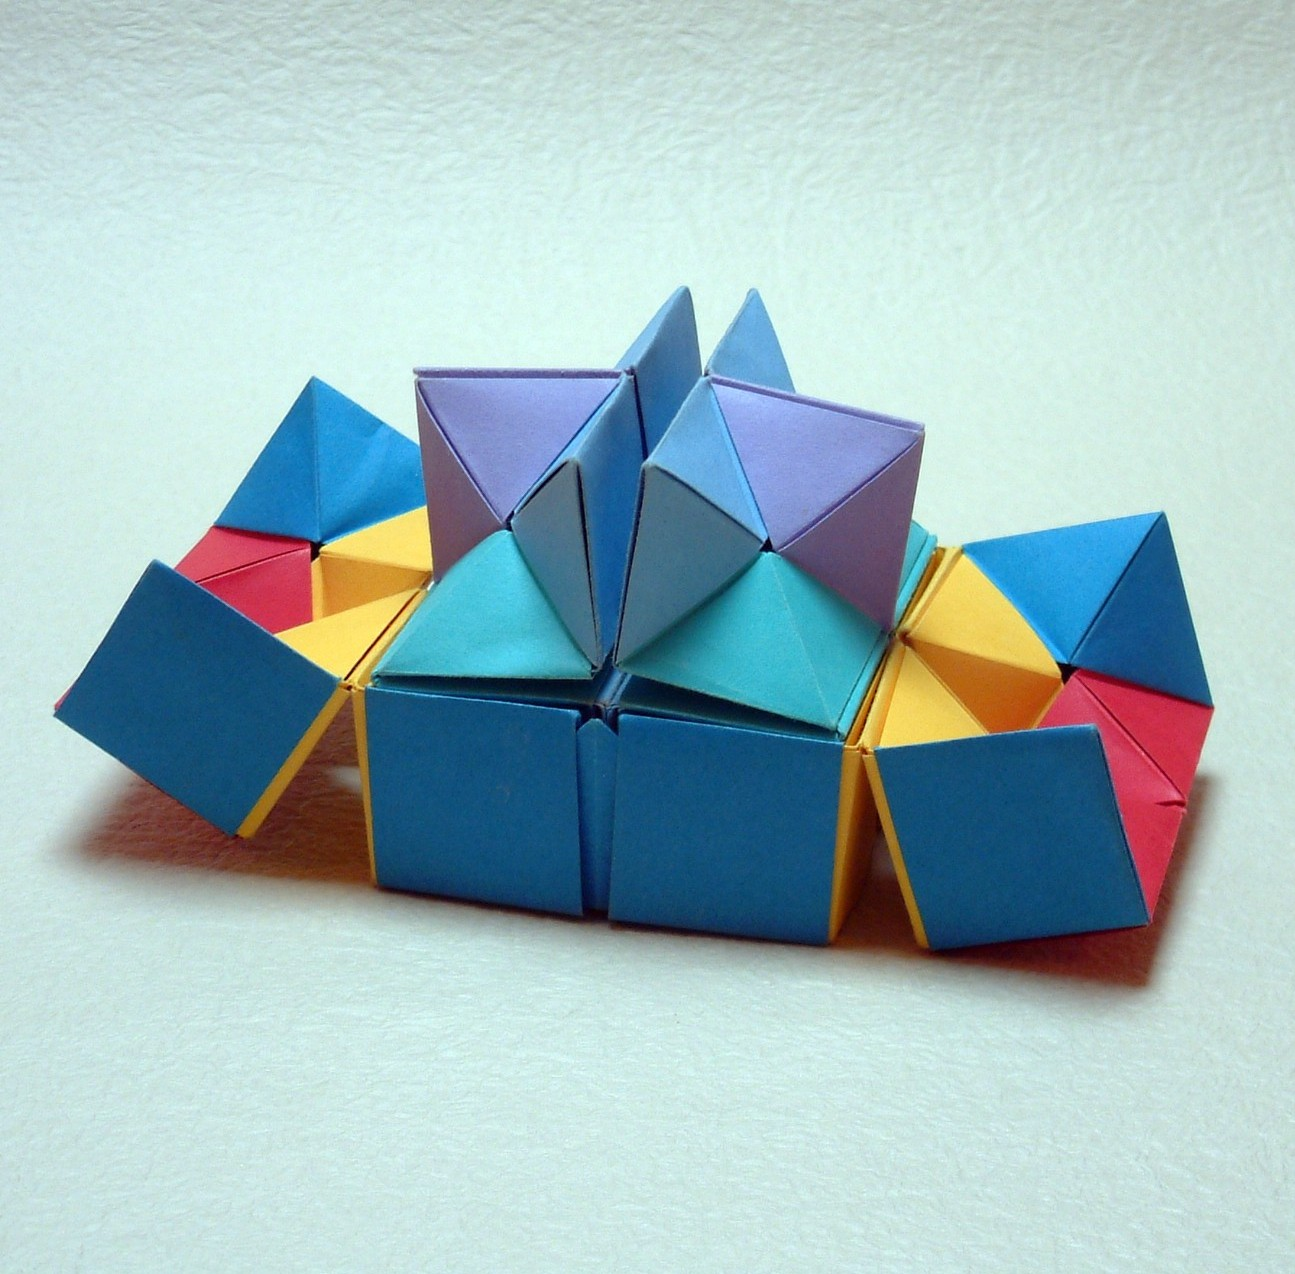 origami diagram com 7 blade david brill